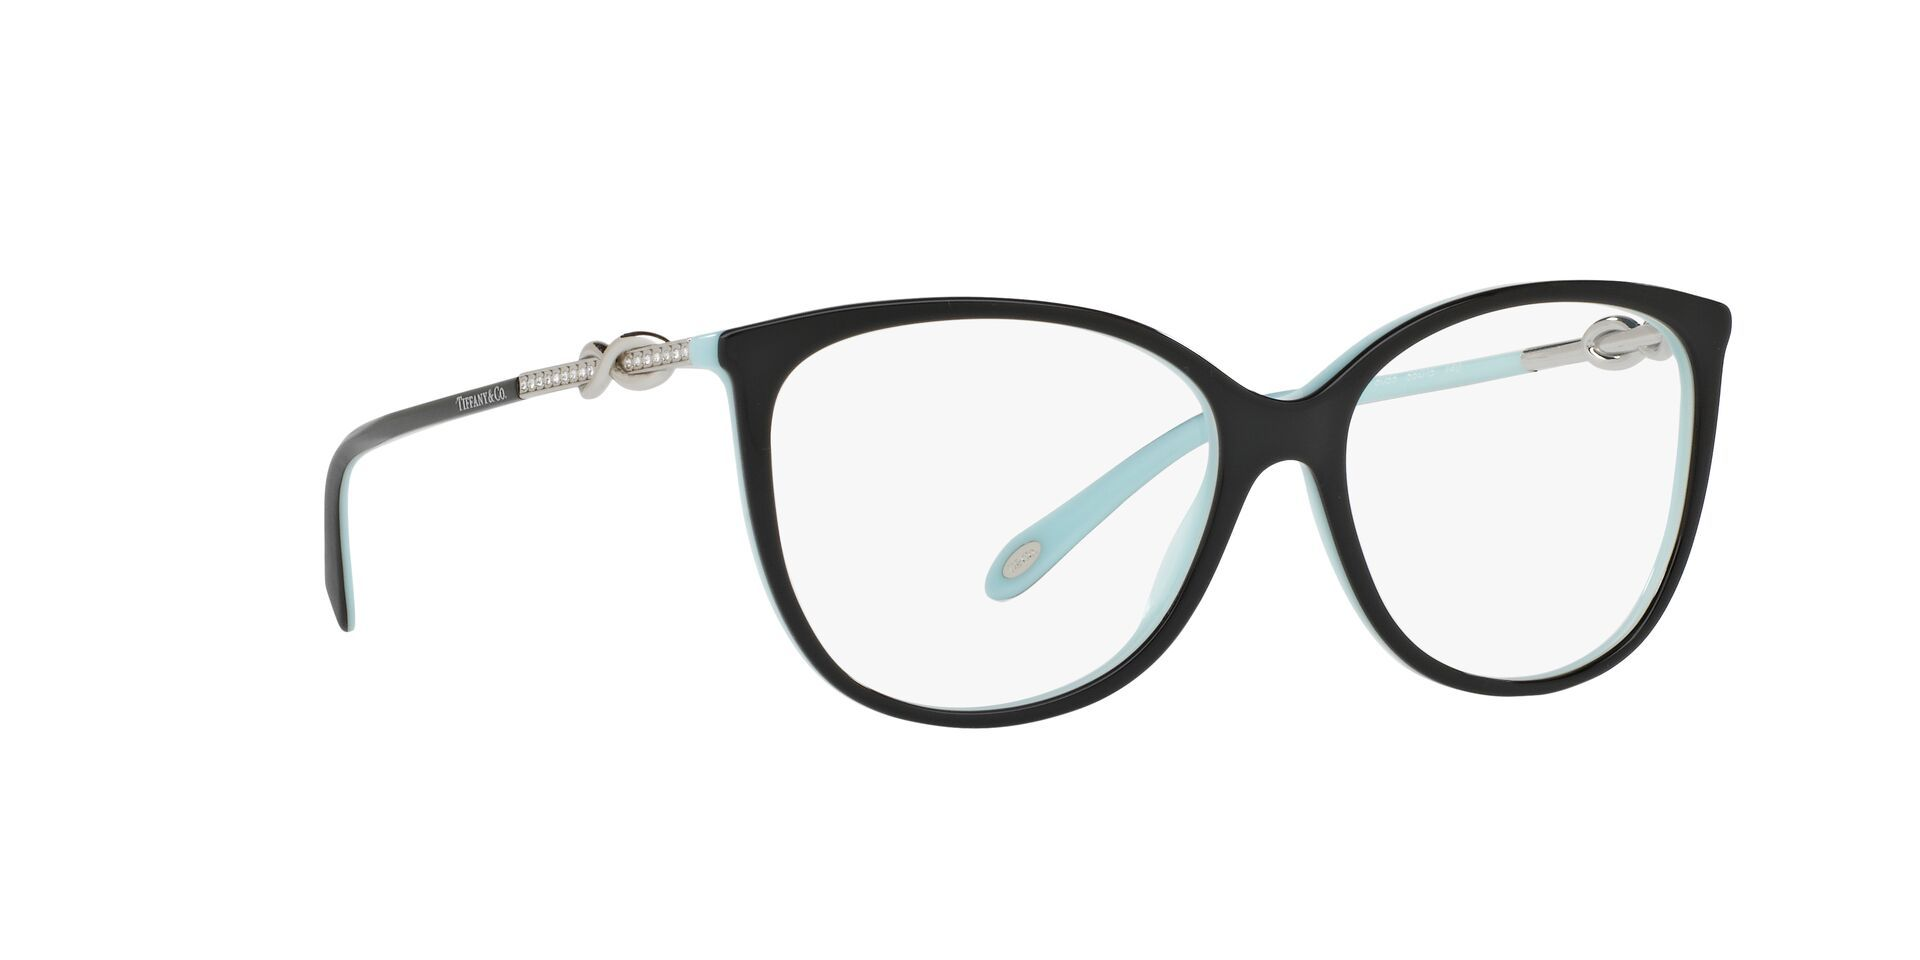 Tiffany - TF2143B Black Oval Women Eyeglasses - 53mm-Eyeglasses-Designer Eyes